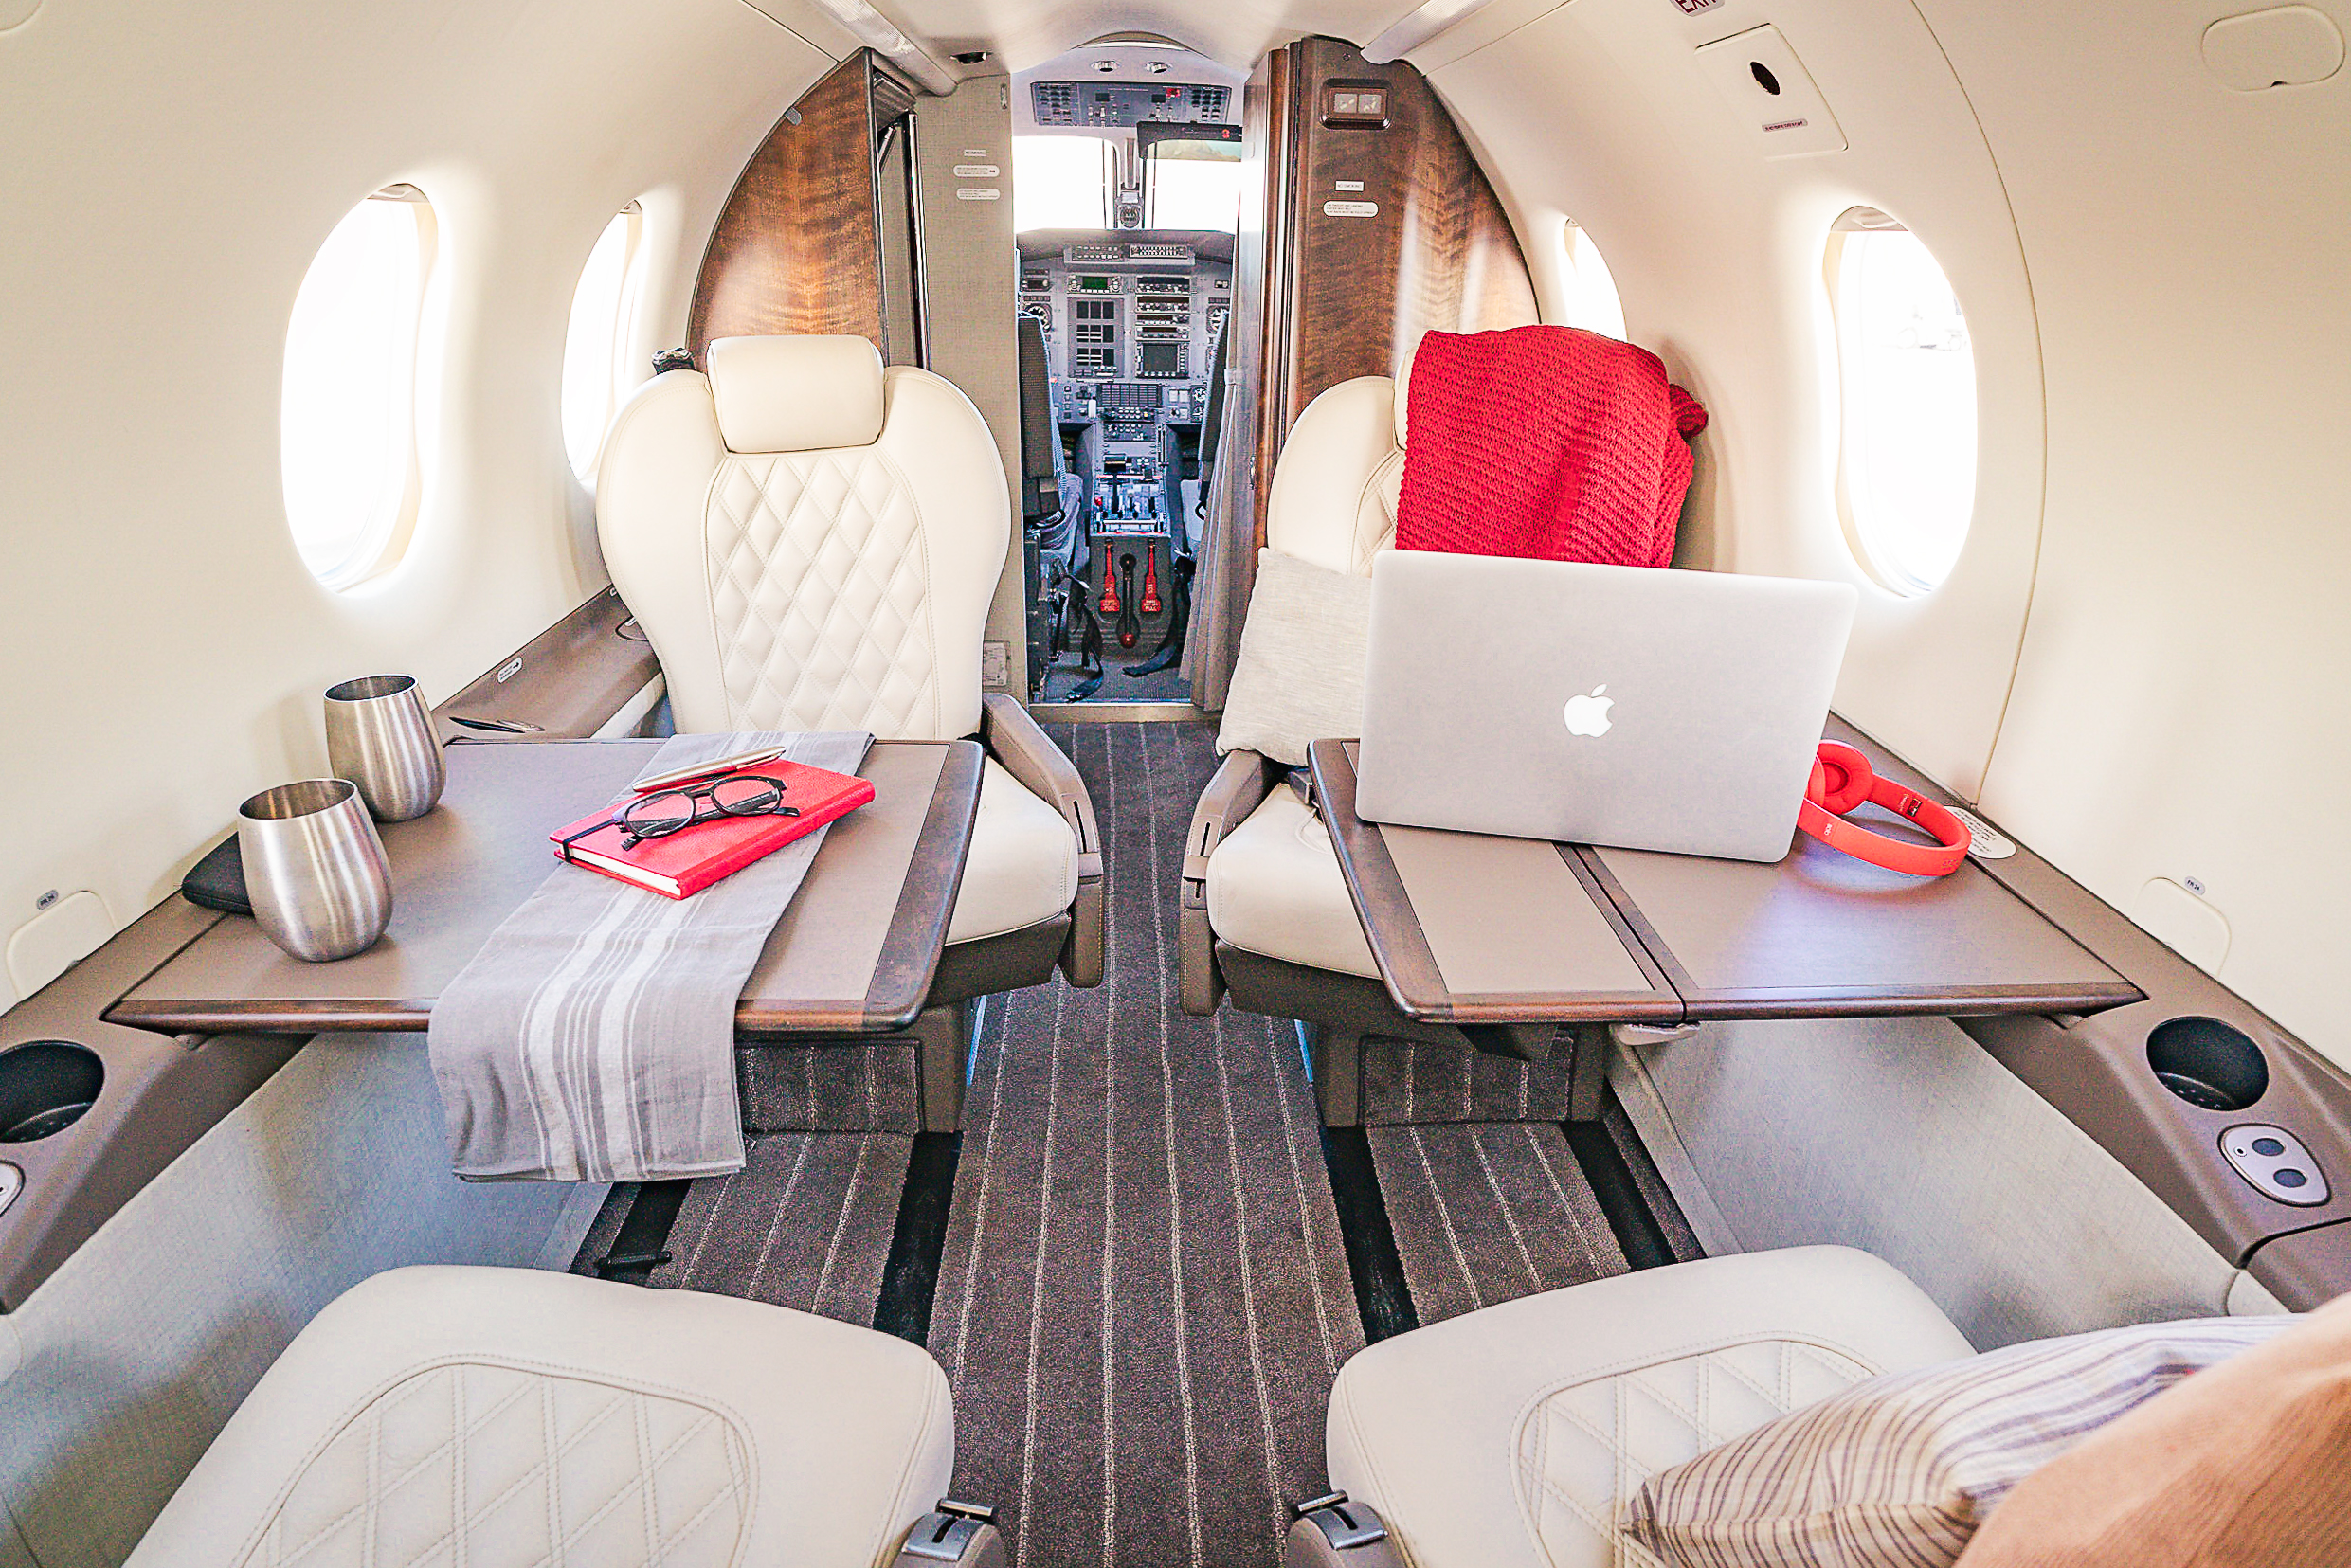 Why fly coach when you can have your board meetings on chartered flights at 38,000 feet?